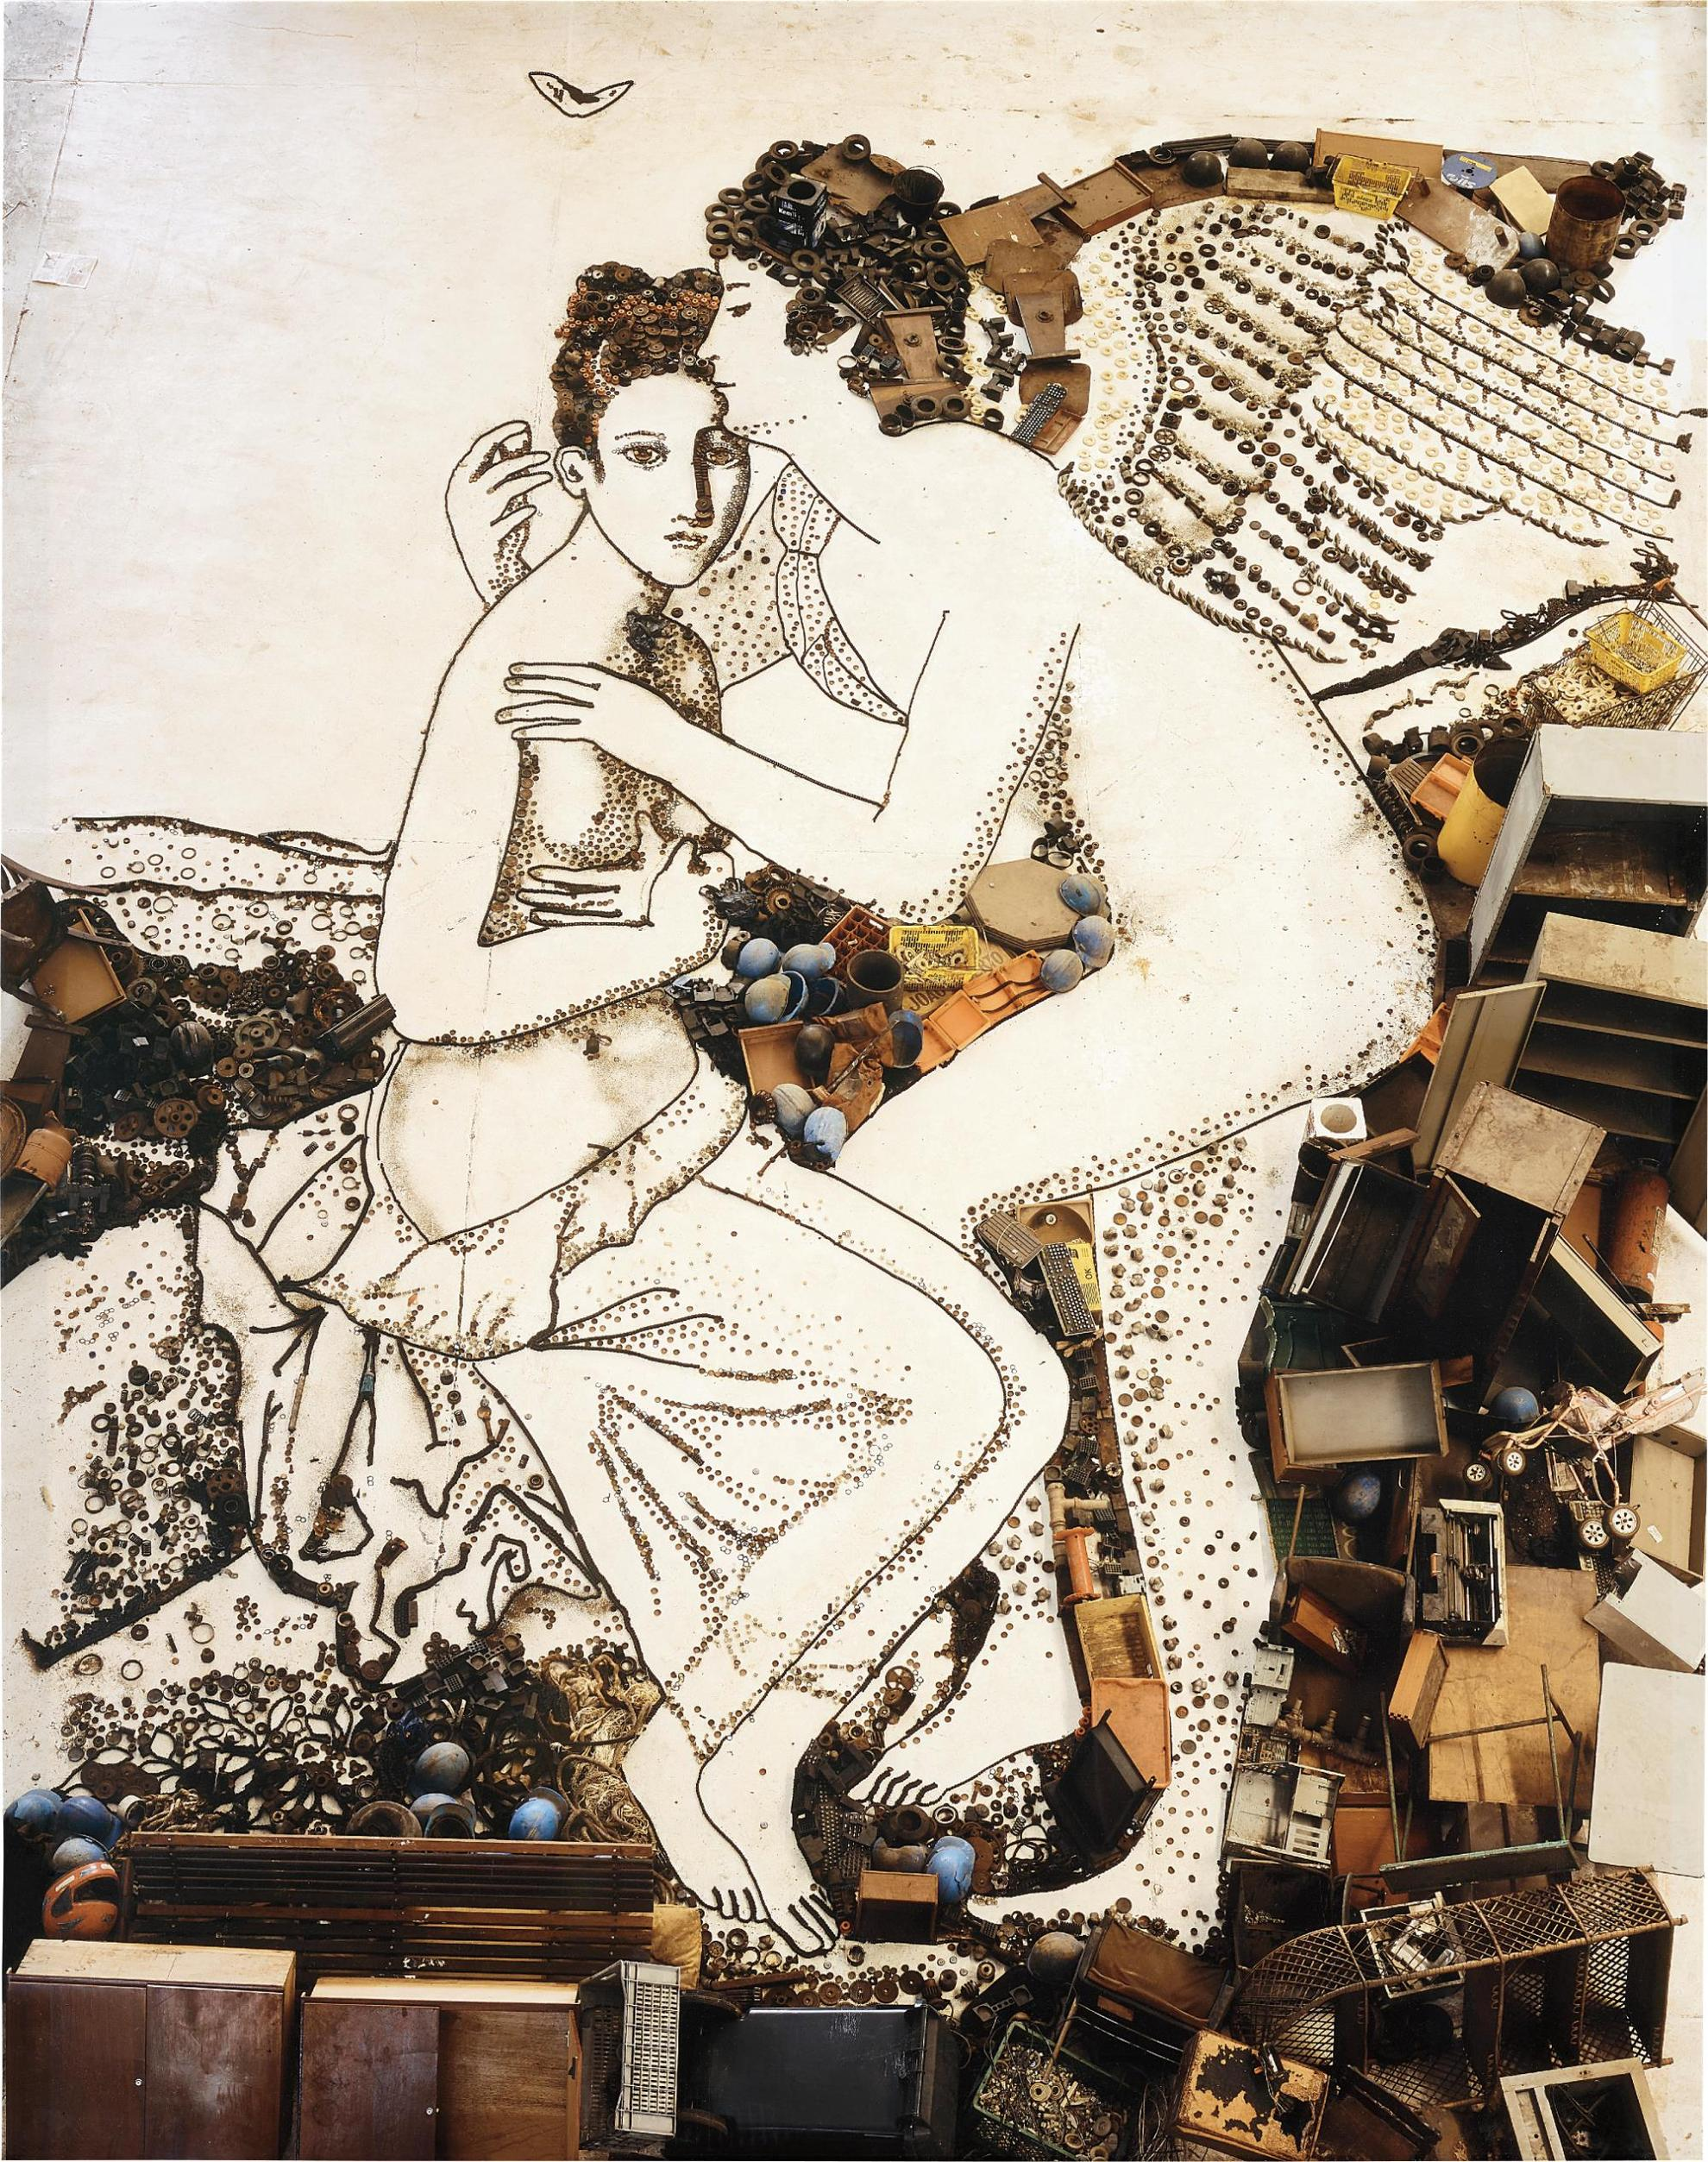 Vik Muniz-Amore And Psyche, After Francois Gerard From Pictures Of Junk-2009